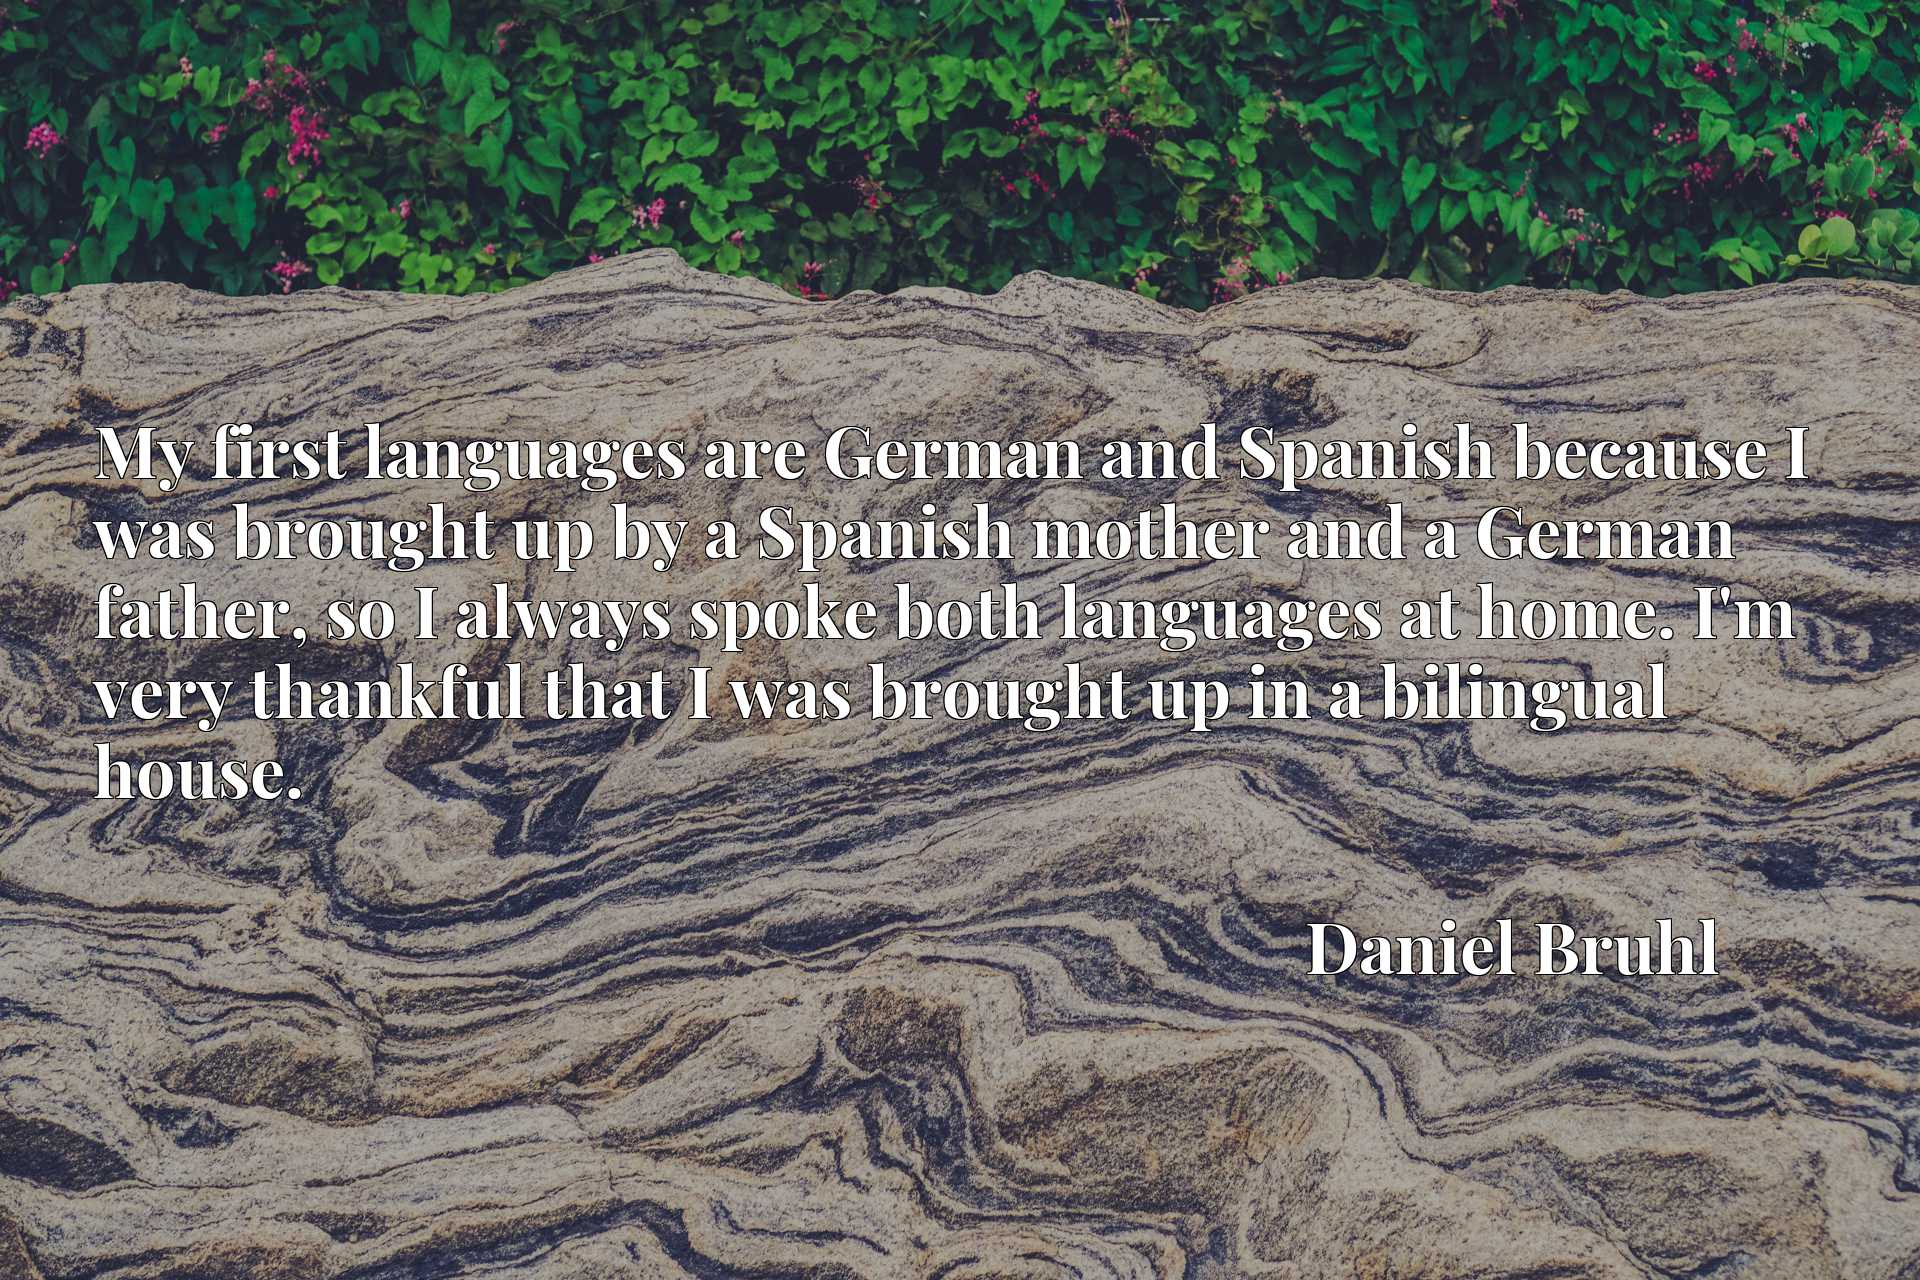 My first languages are German and Spanish because I was brought up by a Spanish mother and a German father, so I always spoke both languages at home. I'm very thankful that I was brought up in a bilingual house.